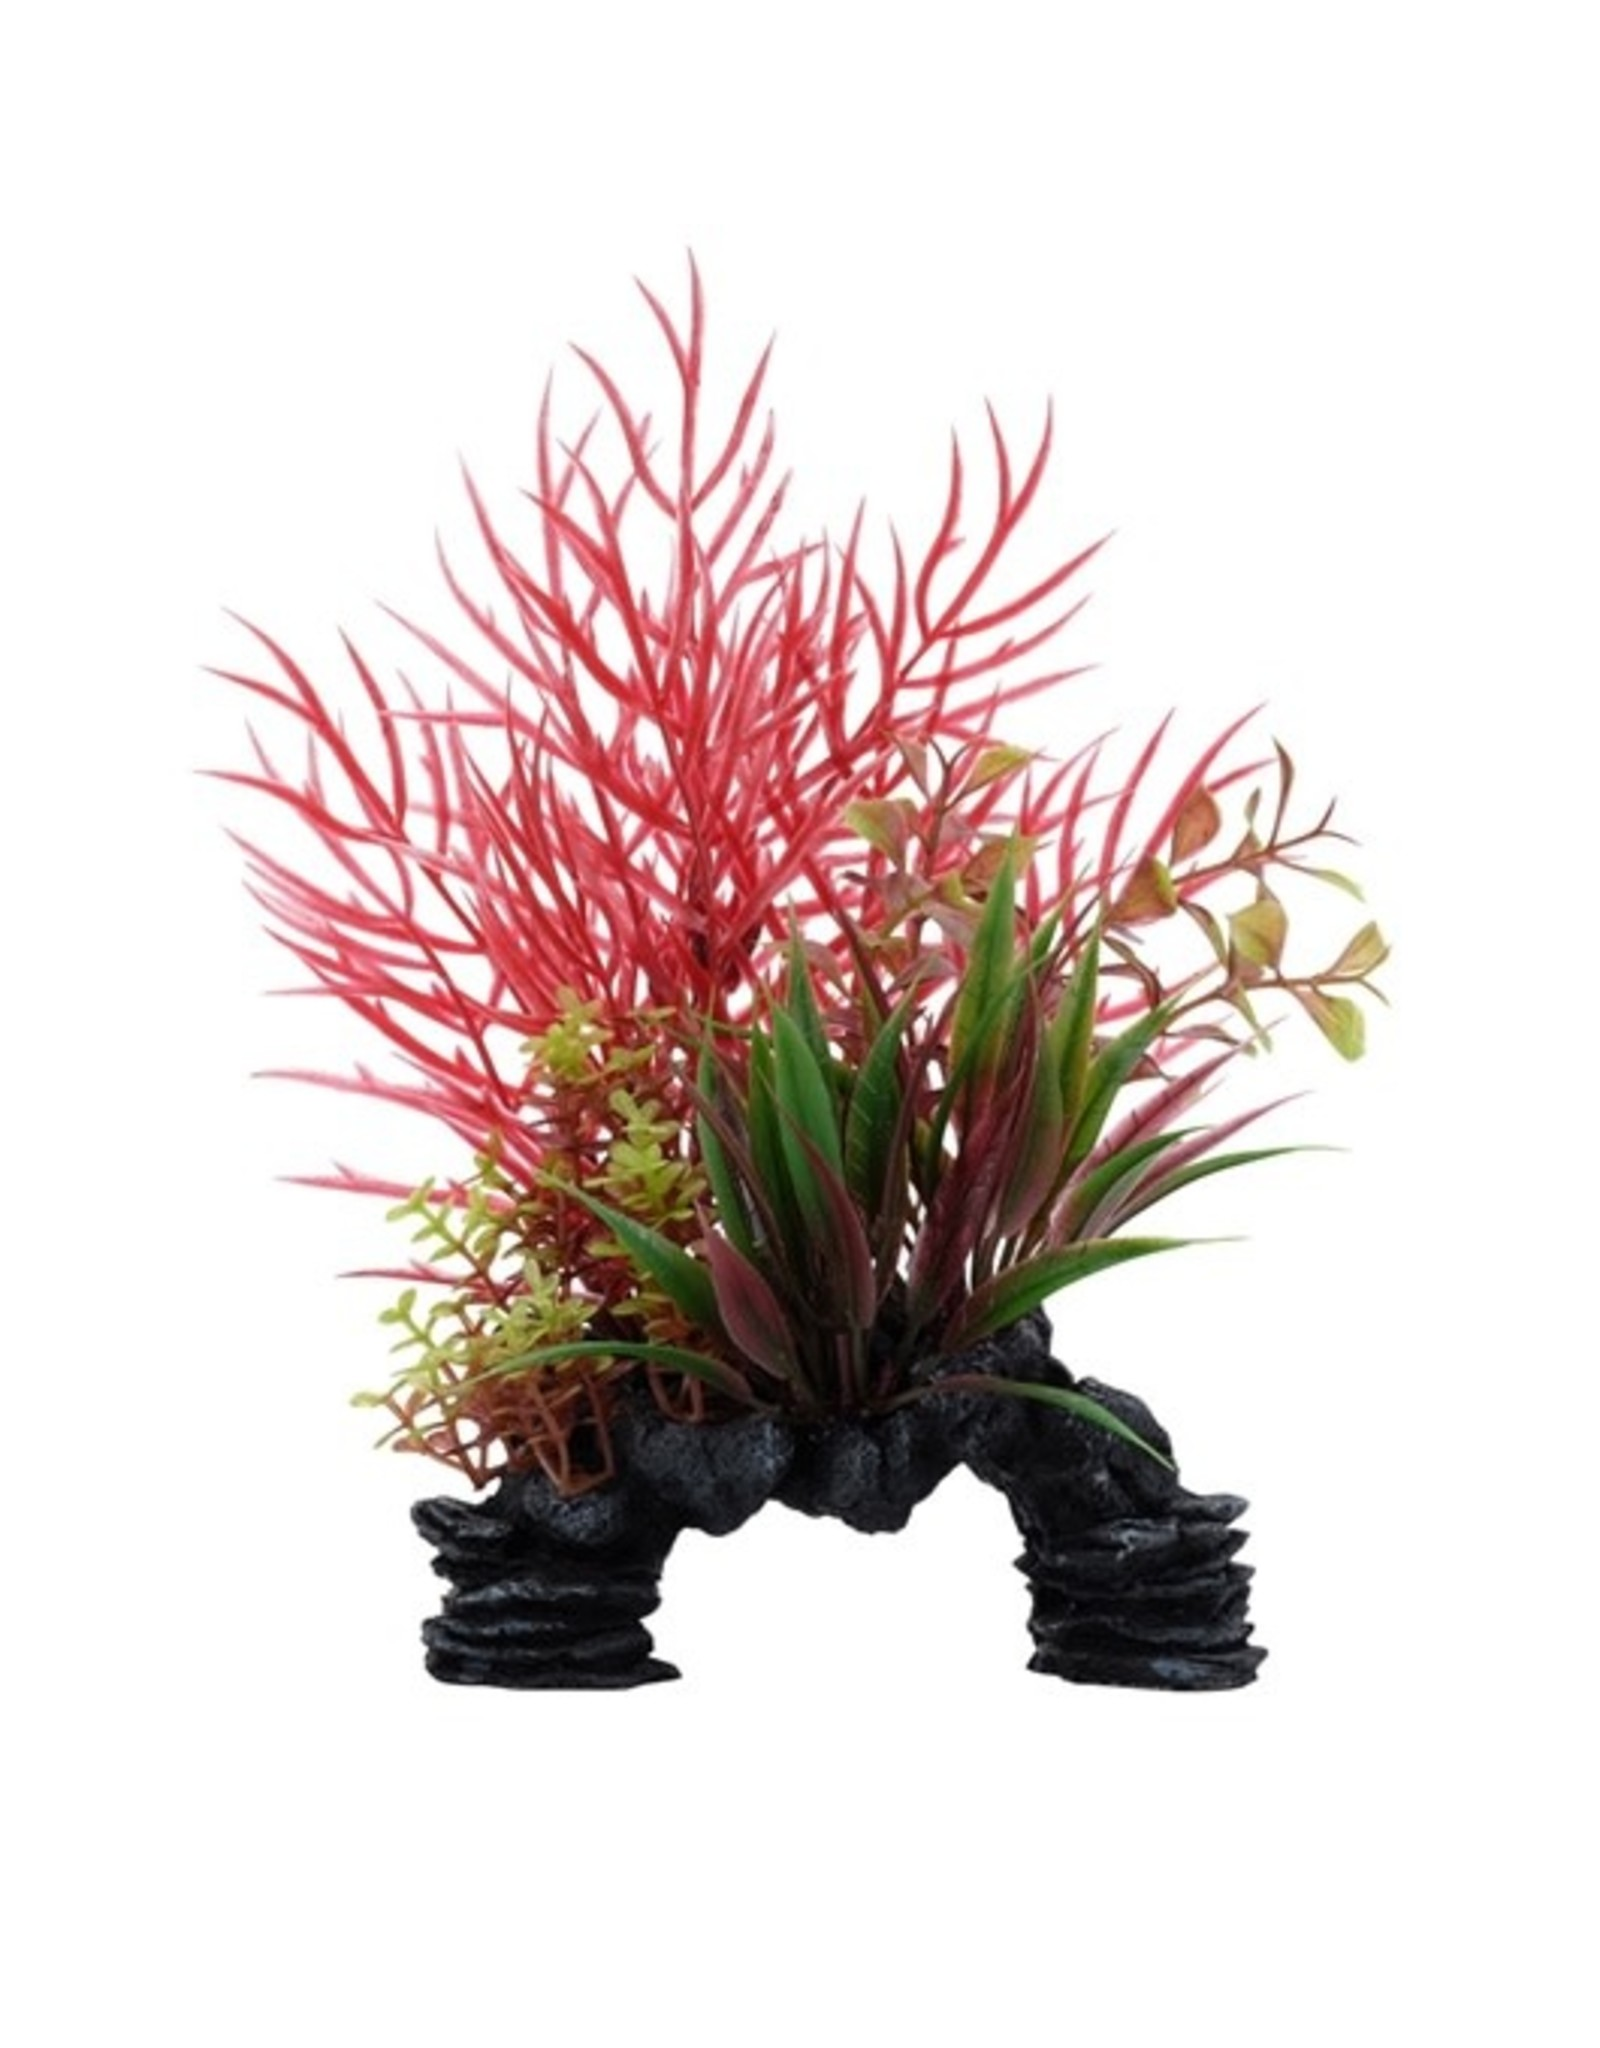 Fluval Fluval Red Wisteria Mix Plant, 8""